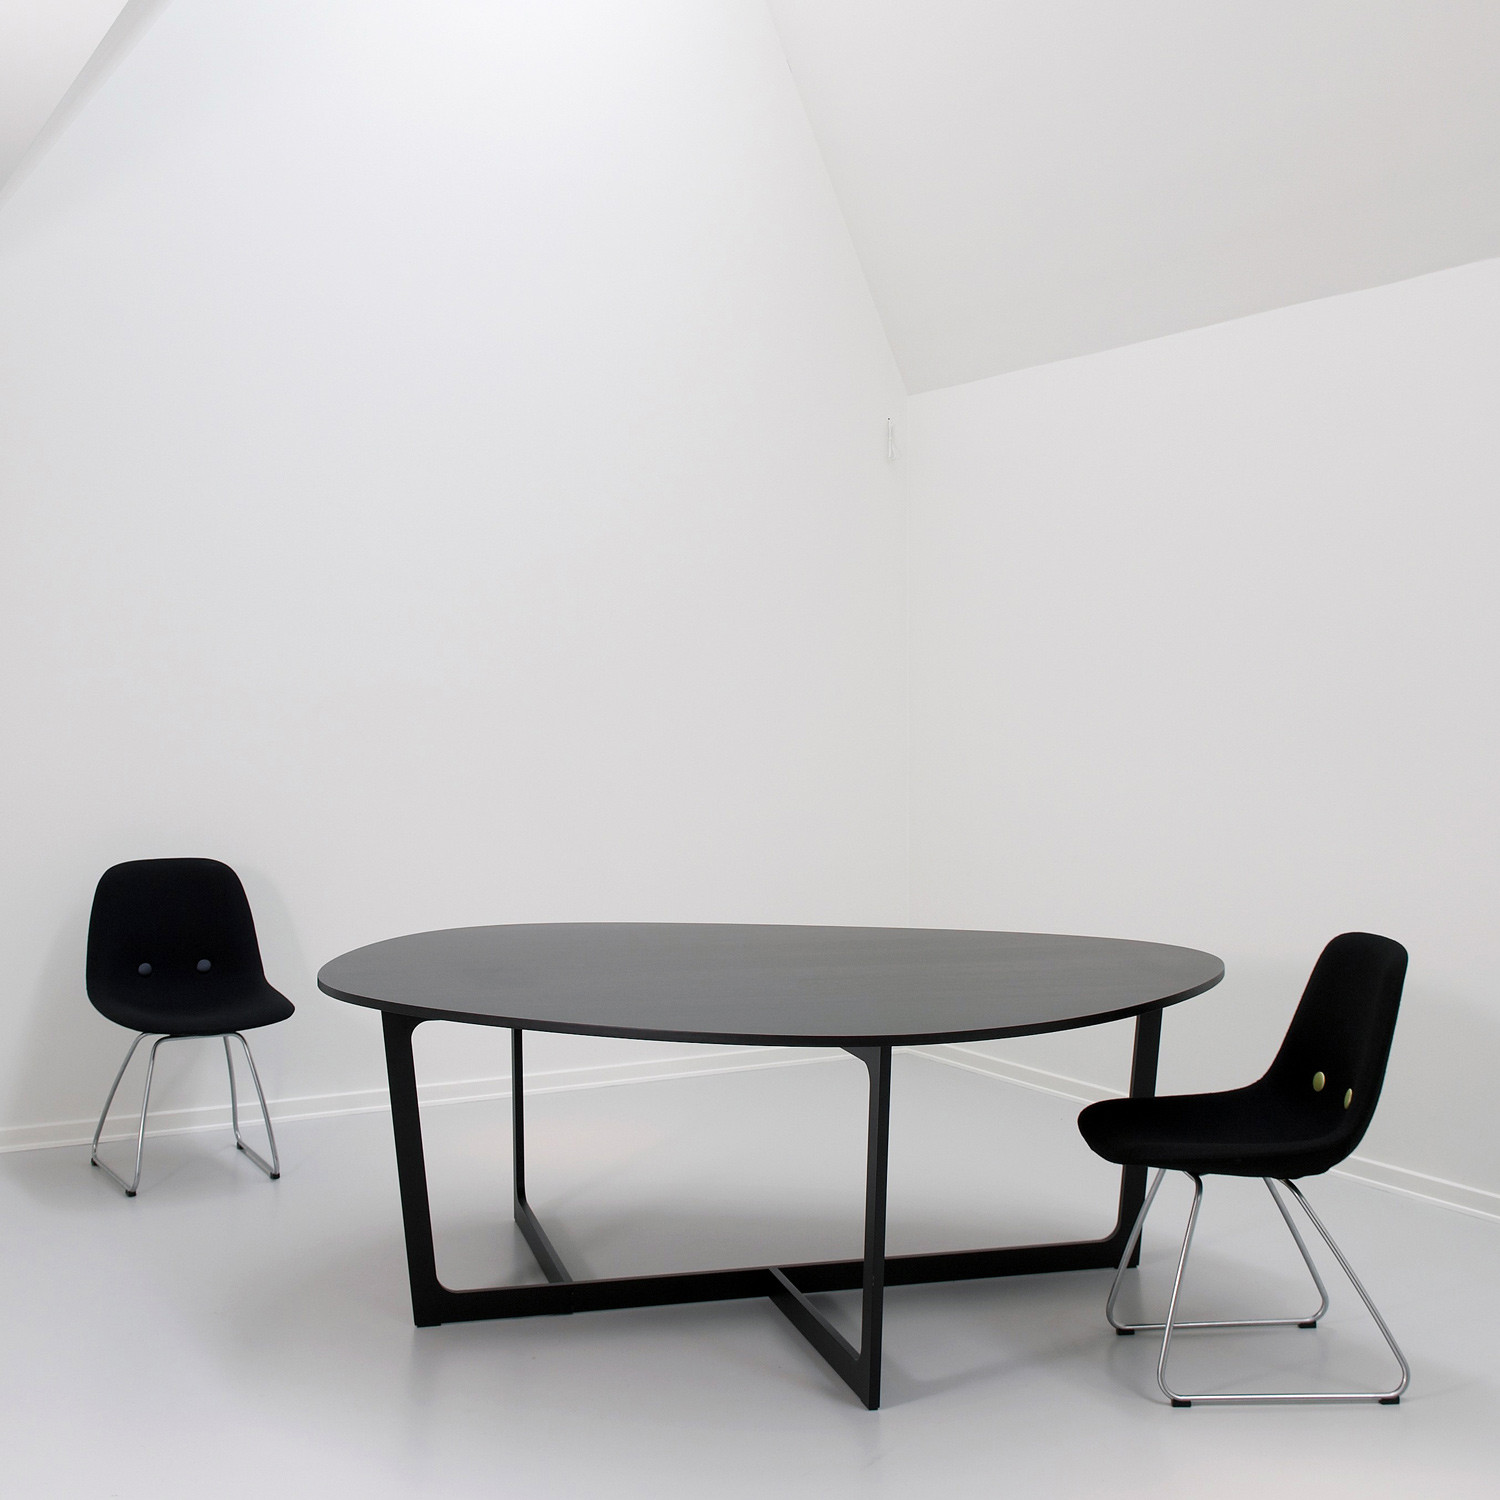 Insula Meeting Table